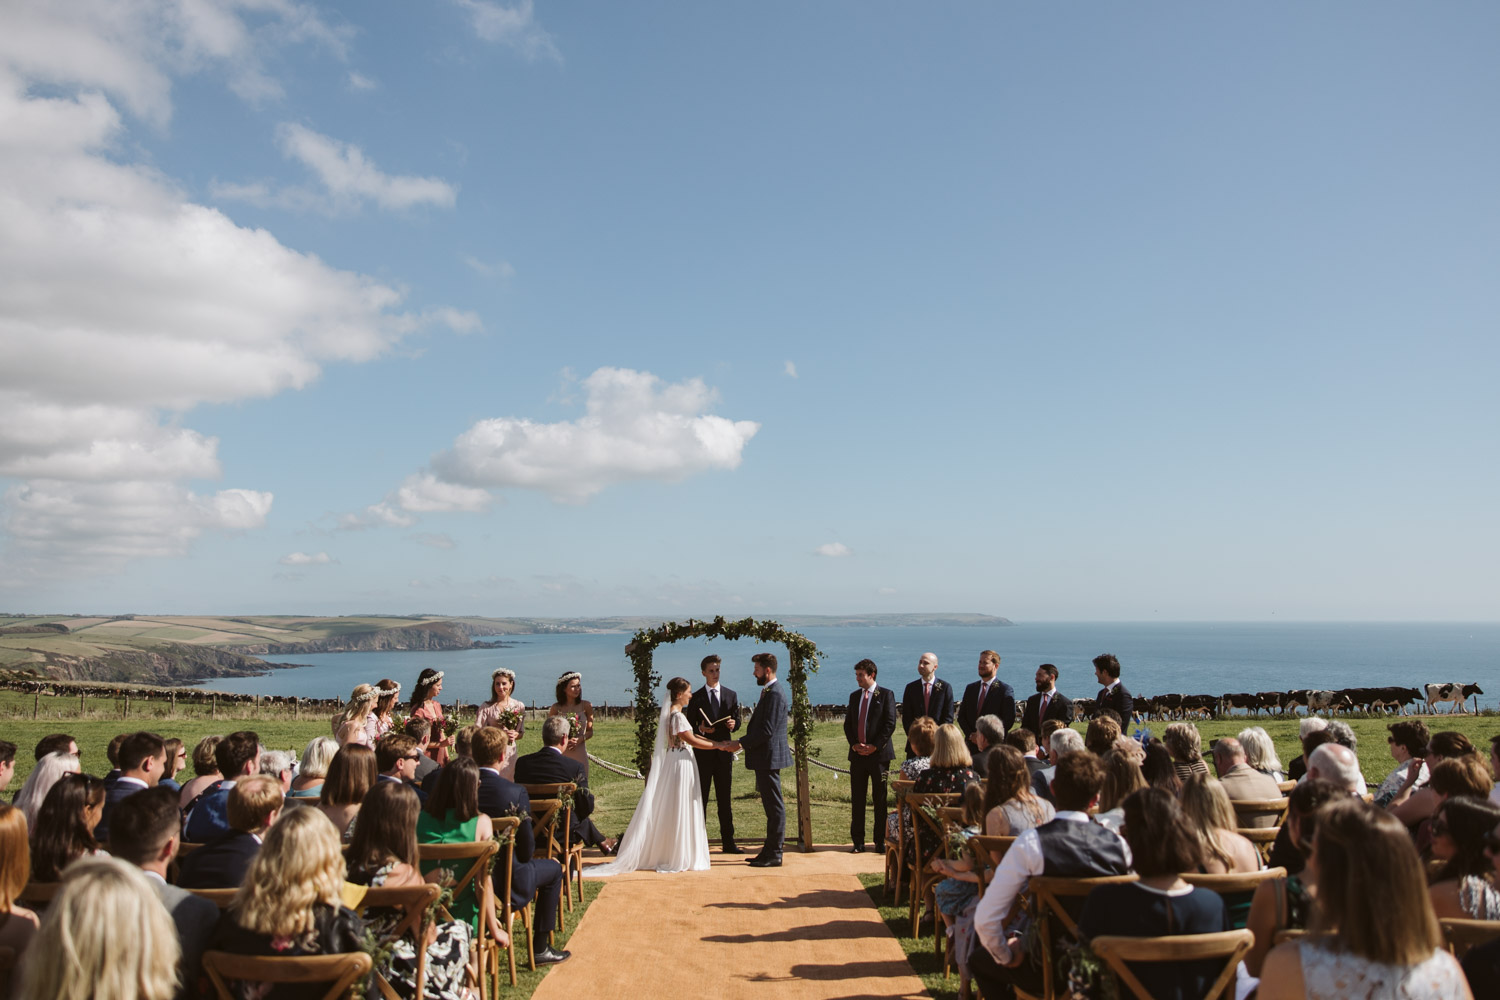 stunning view during the ceremony